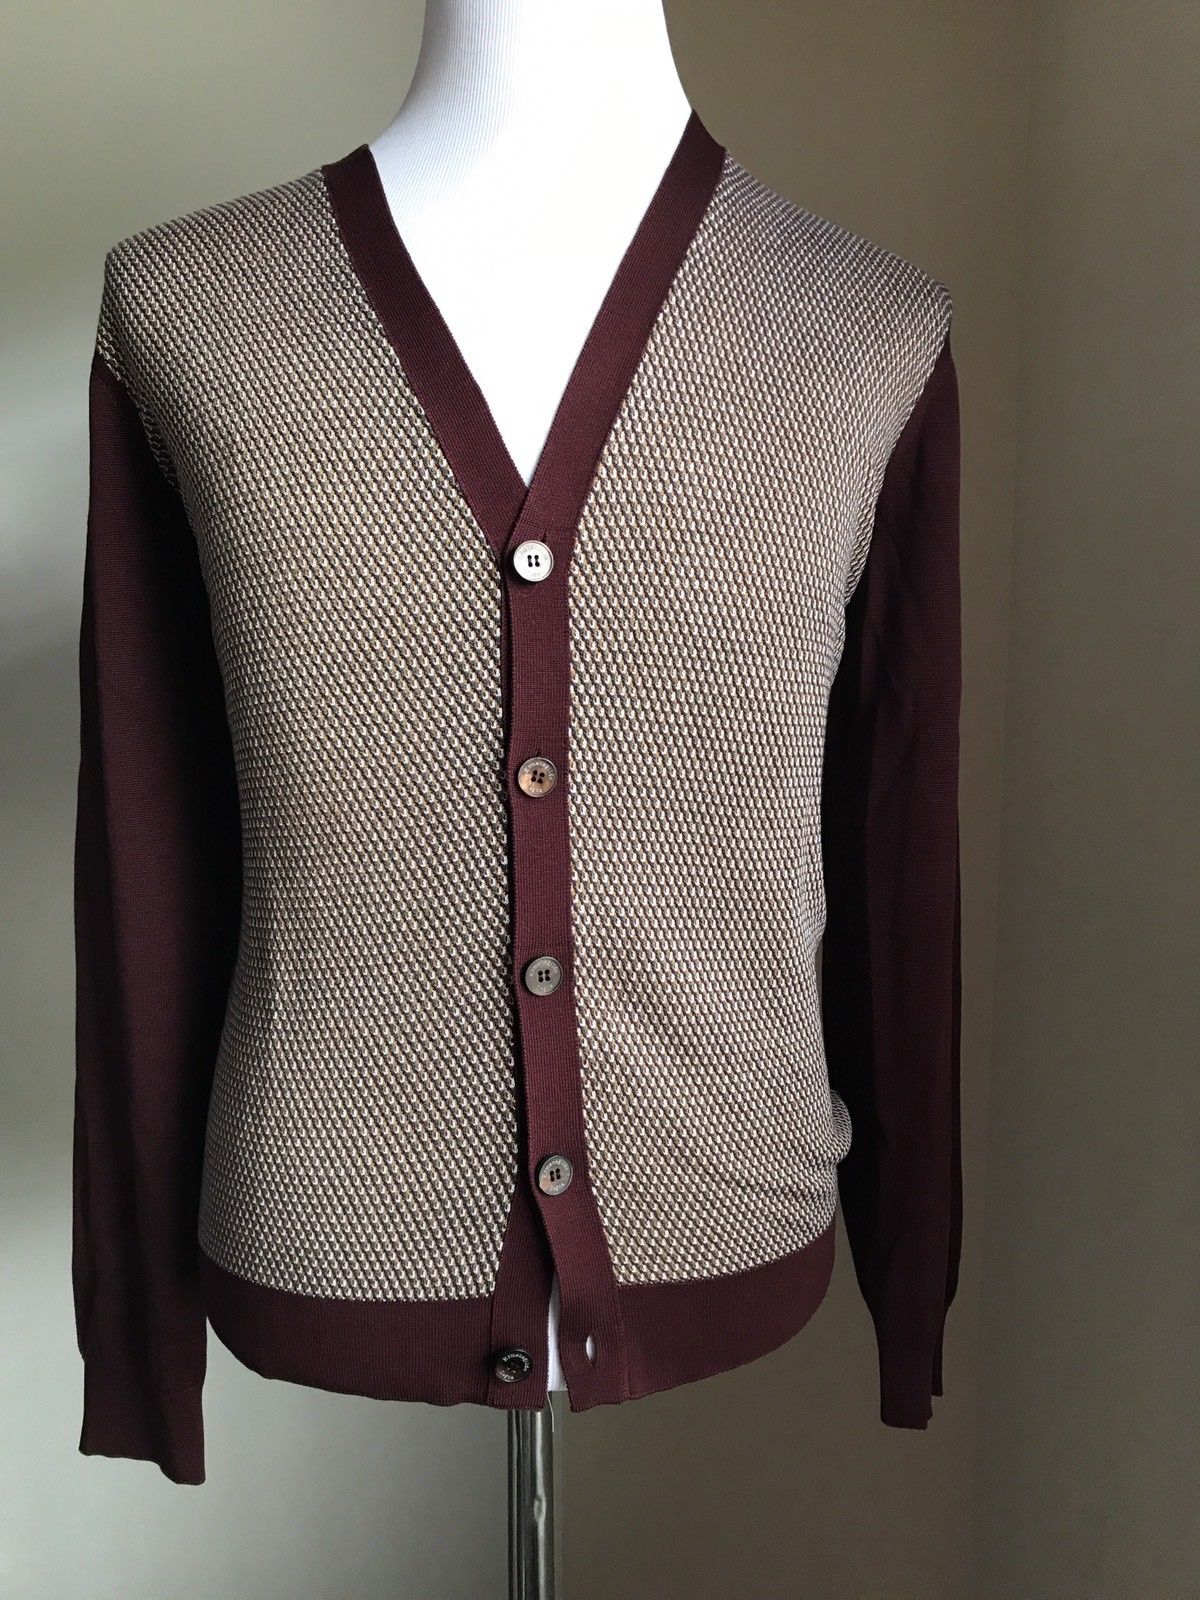 New $1195 Ermenegildo Zegna Cardigan Jacket Sweater Burgundy/Beige L US (52 Eur) - BAYSUPERSTORE